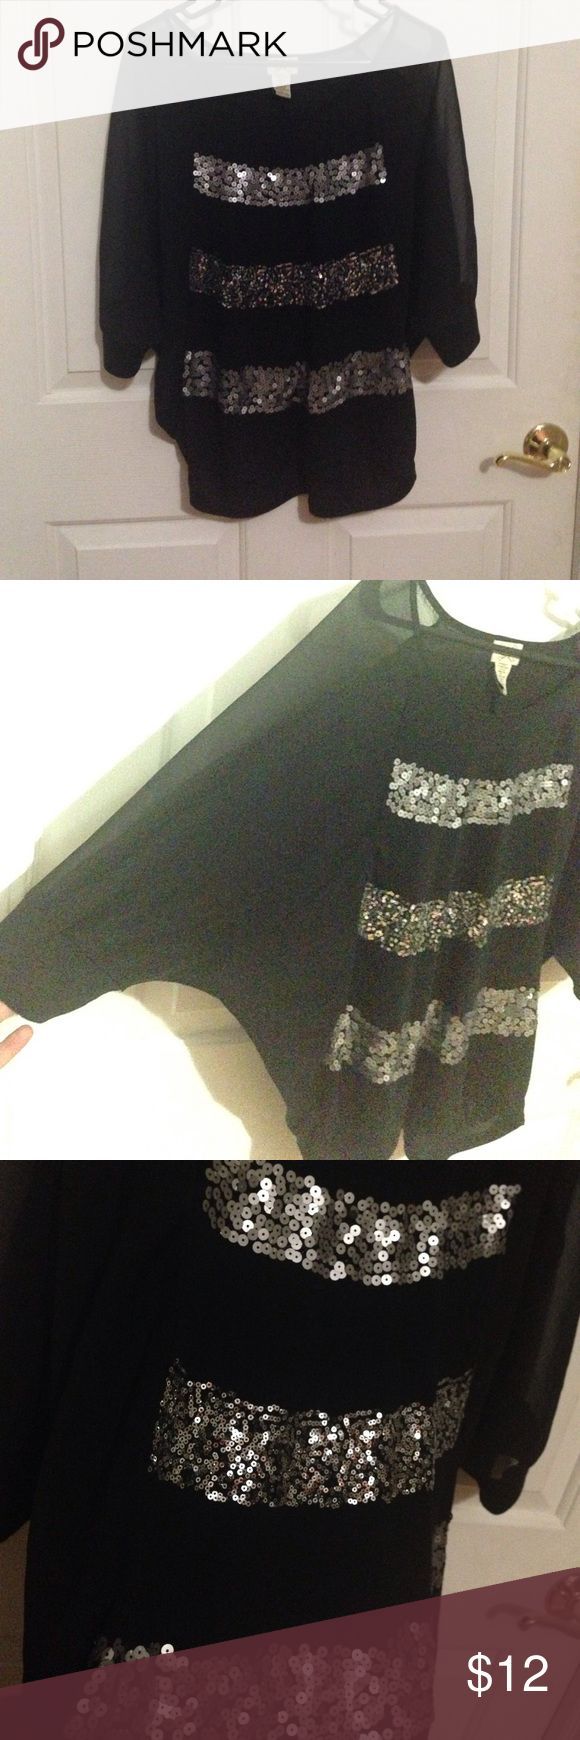 Black sequin blouse Black knit (front and back) blouse with thick bands of silver sequins across front. Two bands are matte silver and the center band is glossy/shiny silver. The arms are 3/4 length and are sheer except for the cuff which is the same knit material as rest of shirt. Sleeves are batwing style as shown in 2nd photo. Tops Blouses